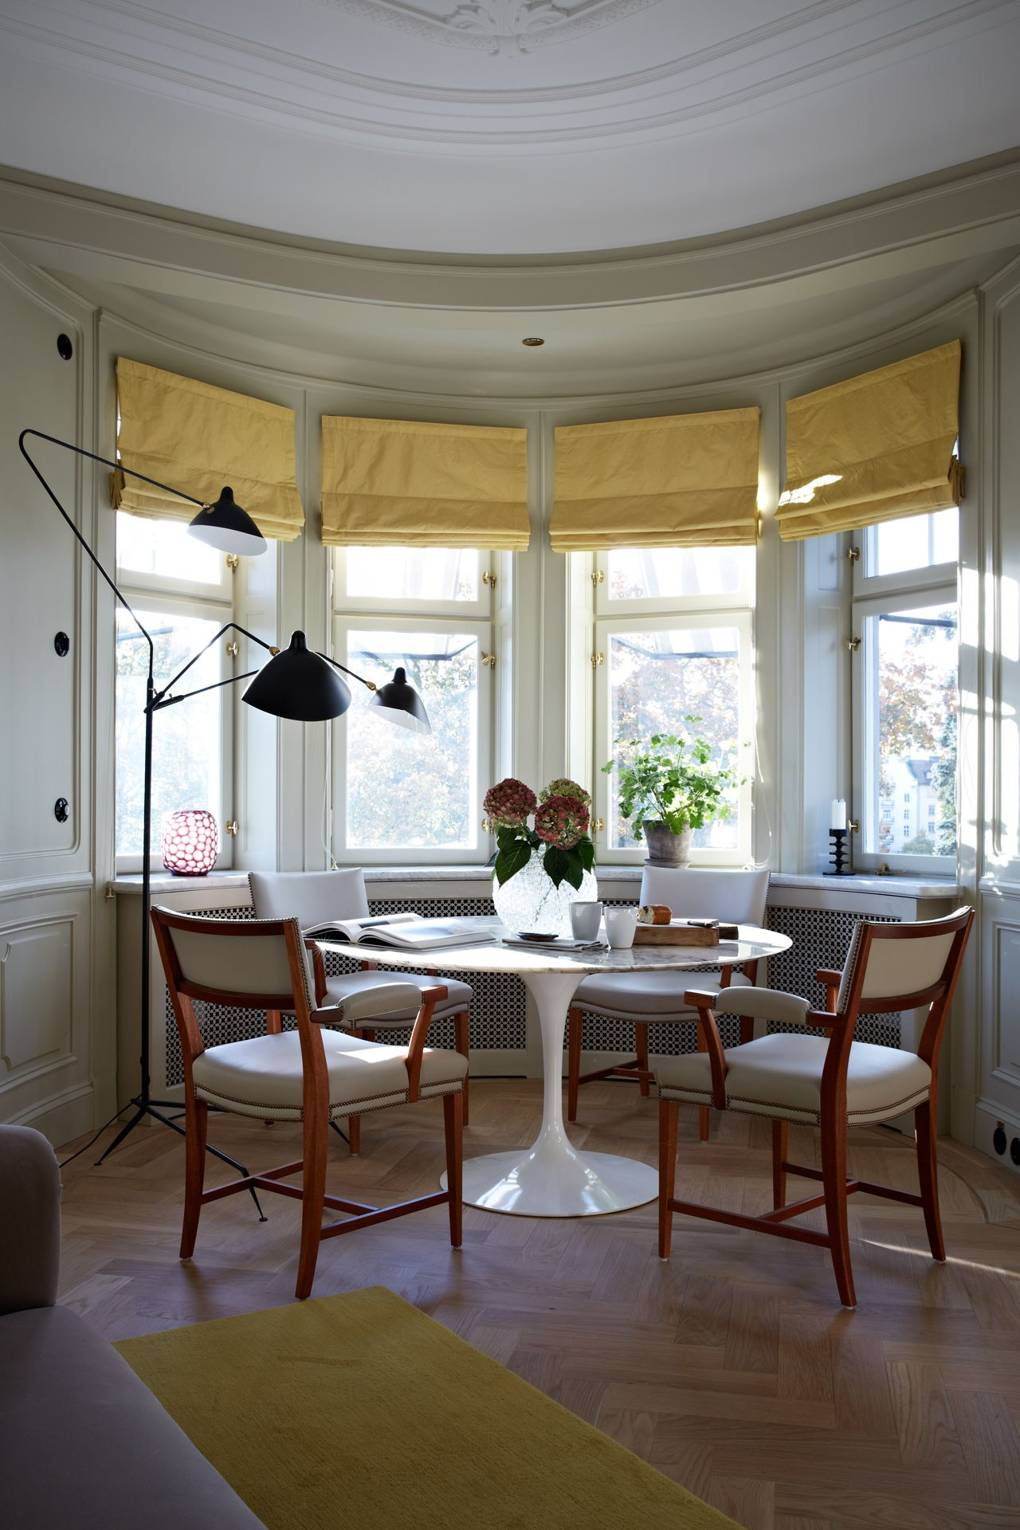 Image Credit:  House and Garden